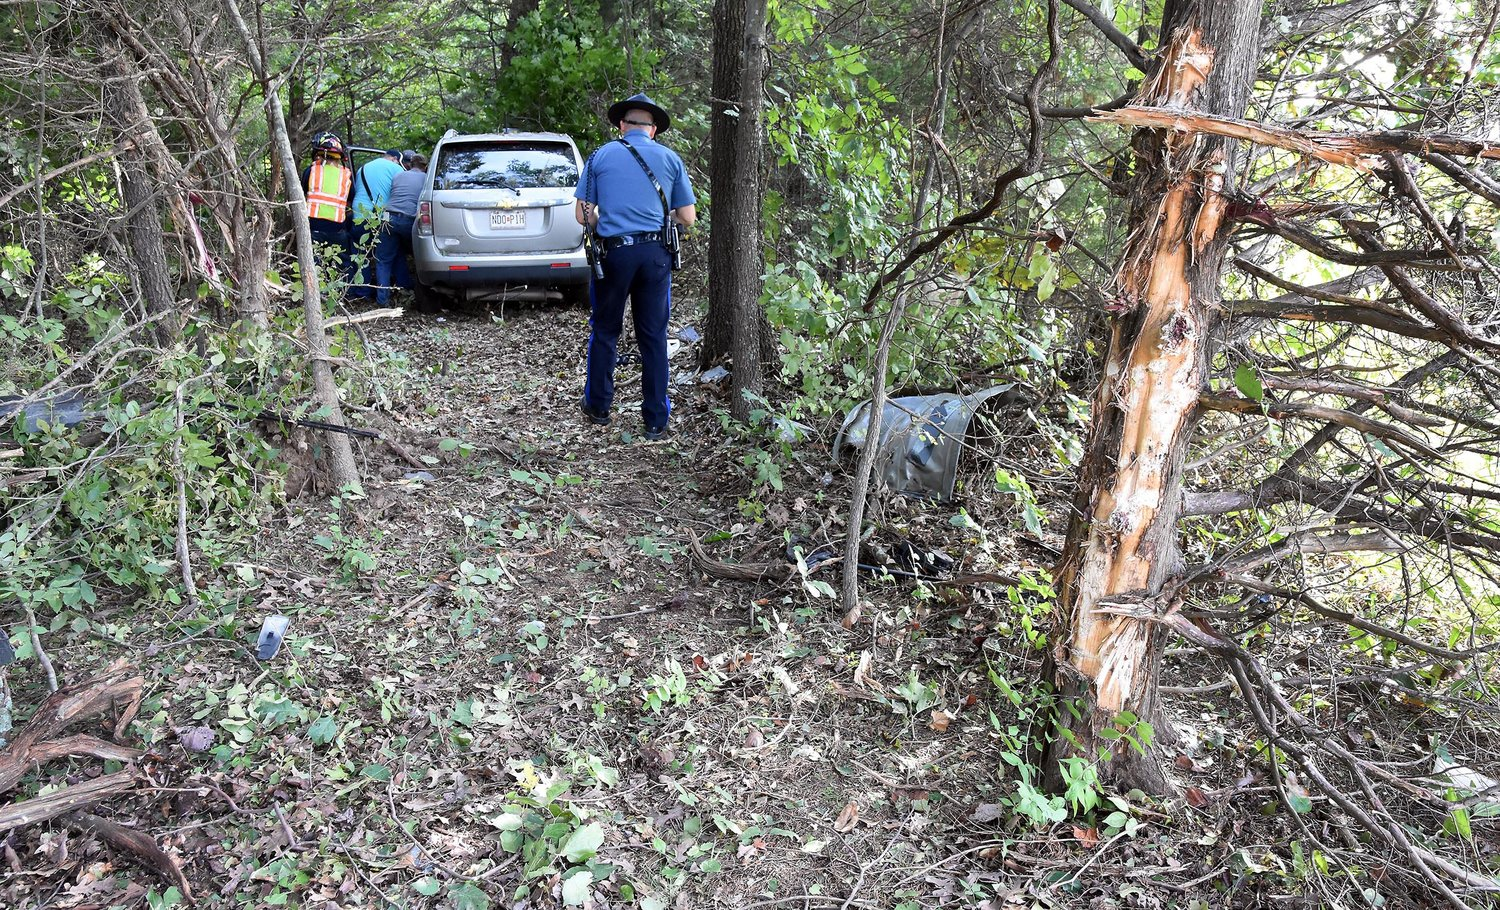 MSHP TROOPER B.R. Lange collects information for a crash report Friday morning after an Owensville woman veered off Highway 28 and came to a stop about 30 feet into the wood line. Firemen from Bland and Owensville had to remove several small trees to access the site and extricate her from her car. Her car careened off a large cedar (right) but missed the oak beside Lange.